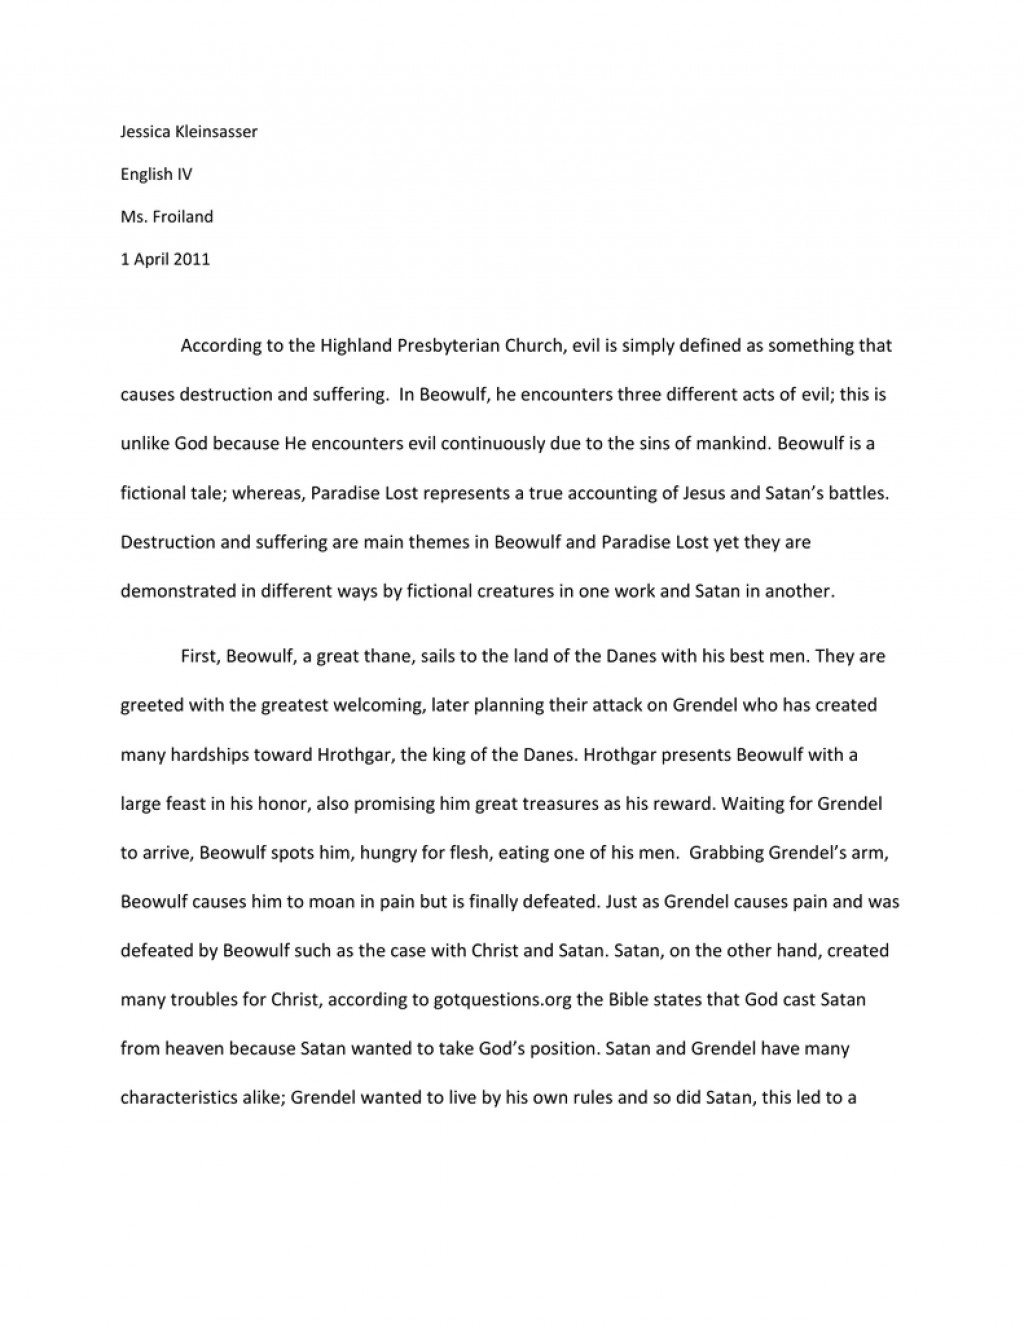 016 Persuasive Essay Topics High School Example Beowulf Argumentative Poemdoc Or For Pdf 009901492 1 Middle With Articles Exceptional Interesting Students Research Paper Prompt Large